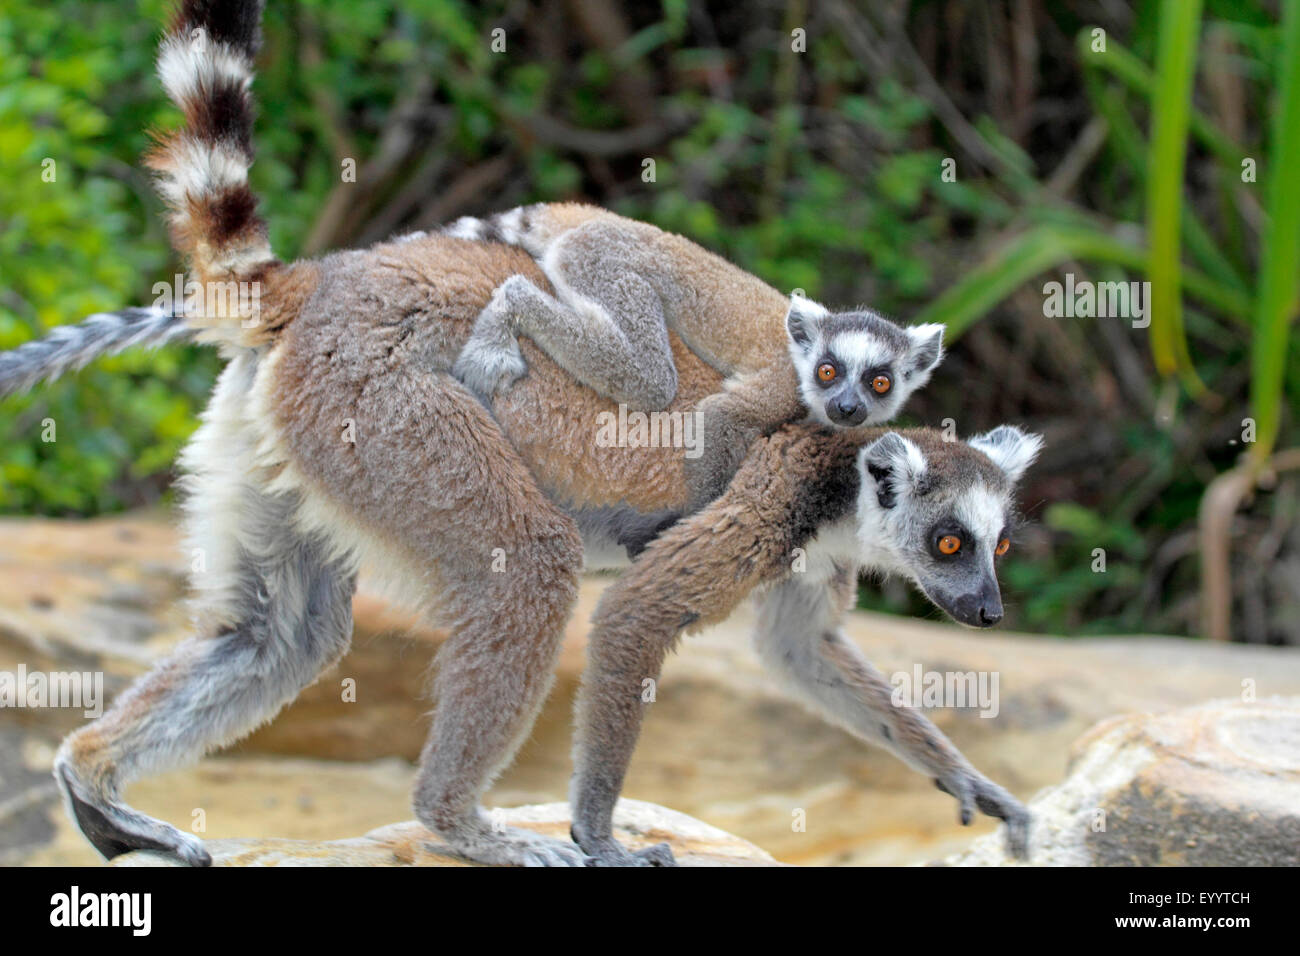 ring-tailed lemur (Lemur catta), female with pup on her back, Madagascar, Andringitra National Park - Stock Image